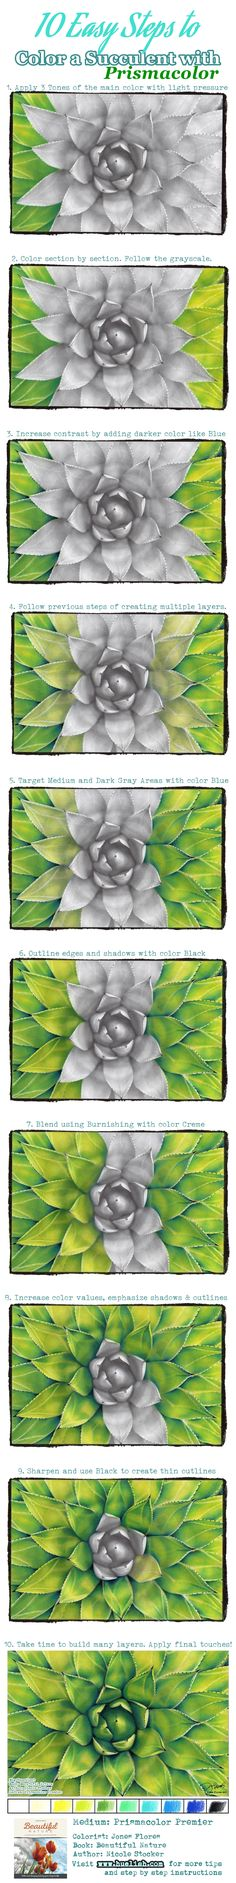 10 Easy Steps to Color a Succulent with Prismacolor. For more coloring tips, techniques and tricks visit Huelish Blog and download your free downloadable coloring page and color along!  #coloringtips #grayscalecoloring #adultcoloringbook #prismacolor #coloredpencils #beautifulnature #succulent #grayscale #coloringtechniques #grayscalecoloringbook #nicolestocker #coloringsteps